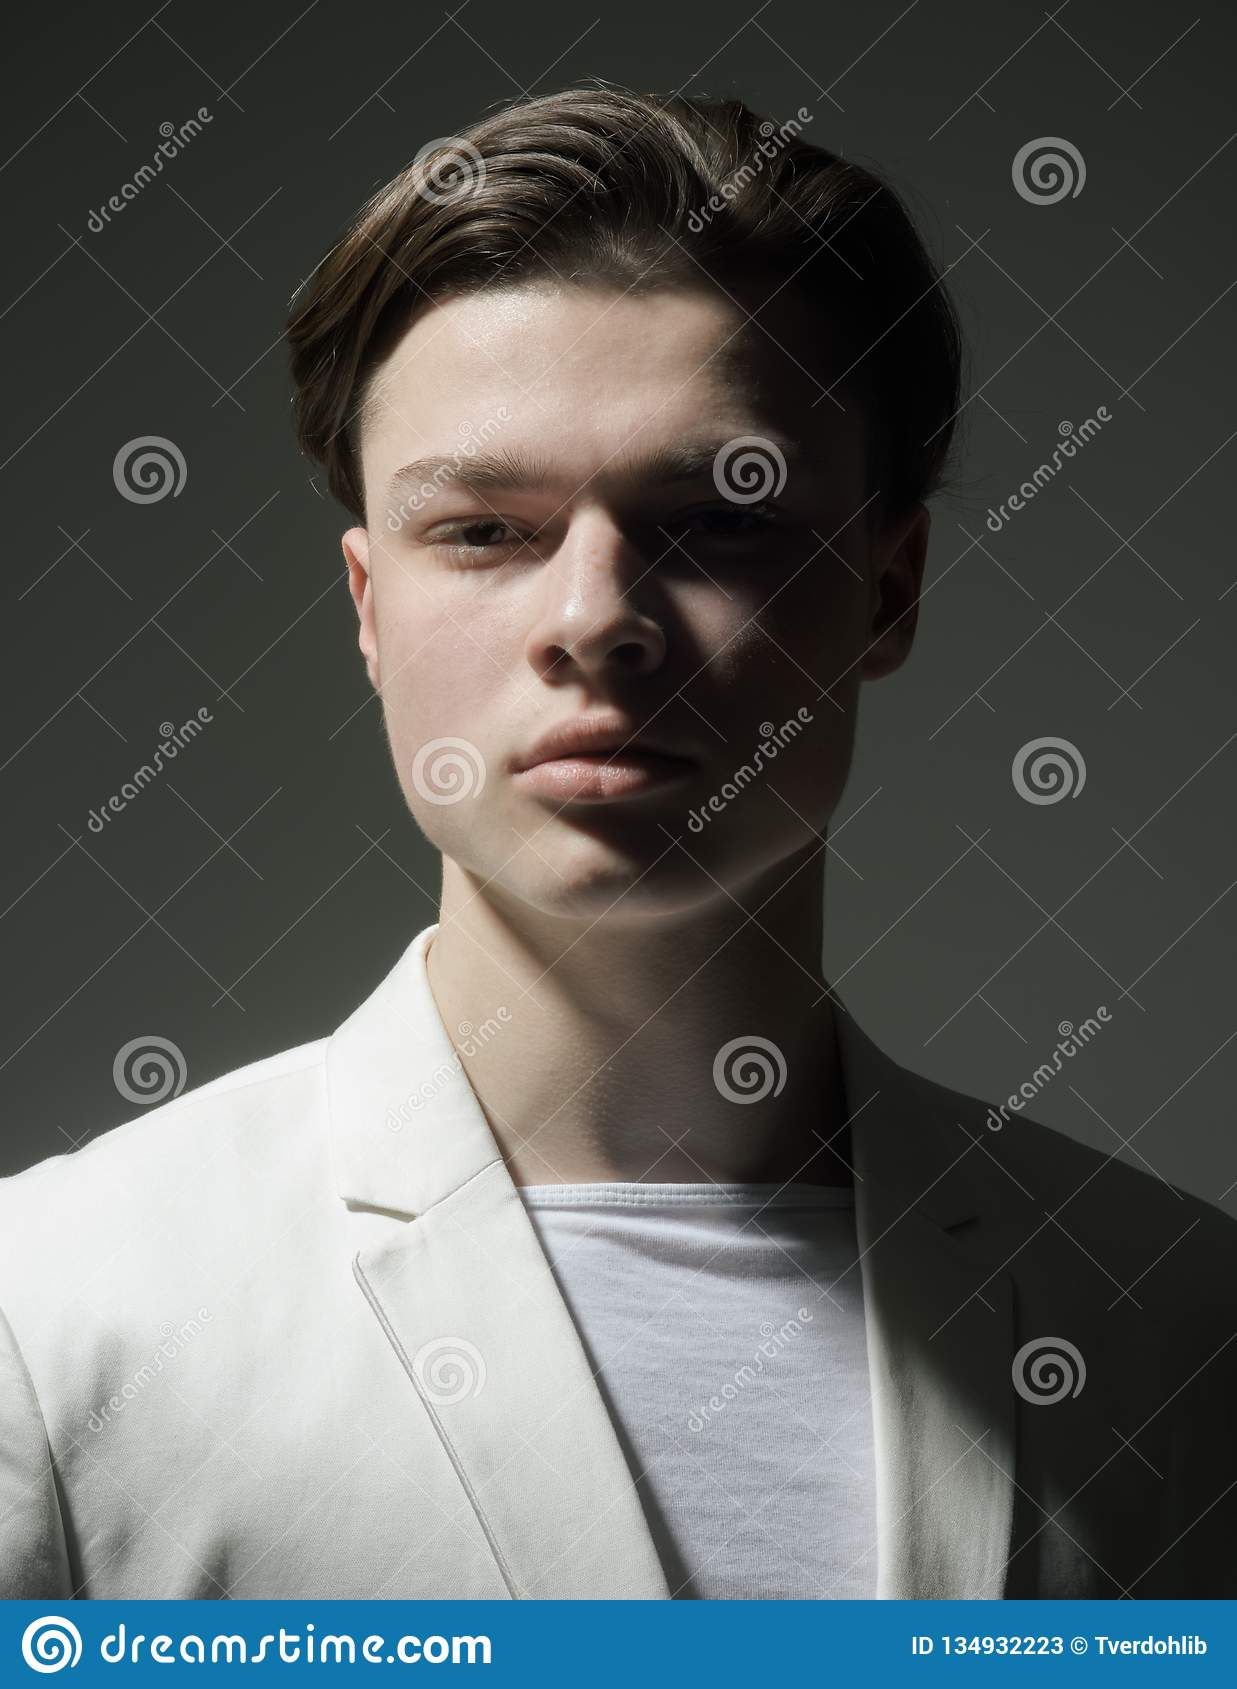 Stylish and confident. Fashion man with mystery look. Beauty and fashion. Man with trendy look. Hair style and skincare